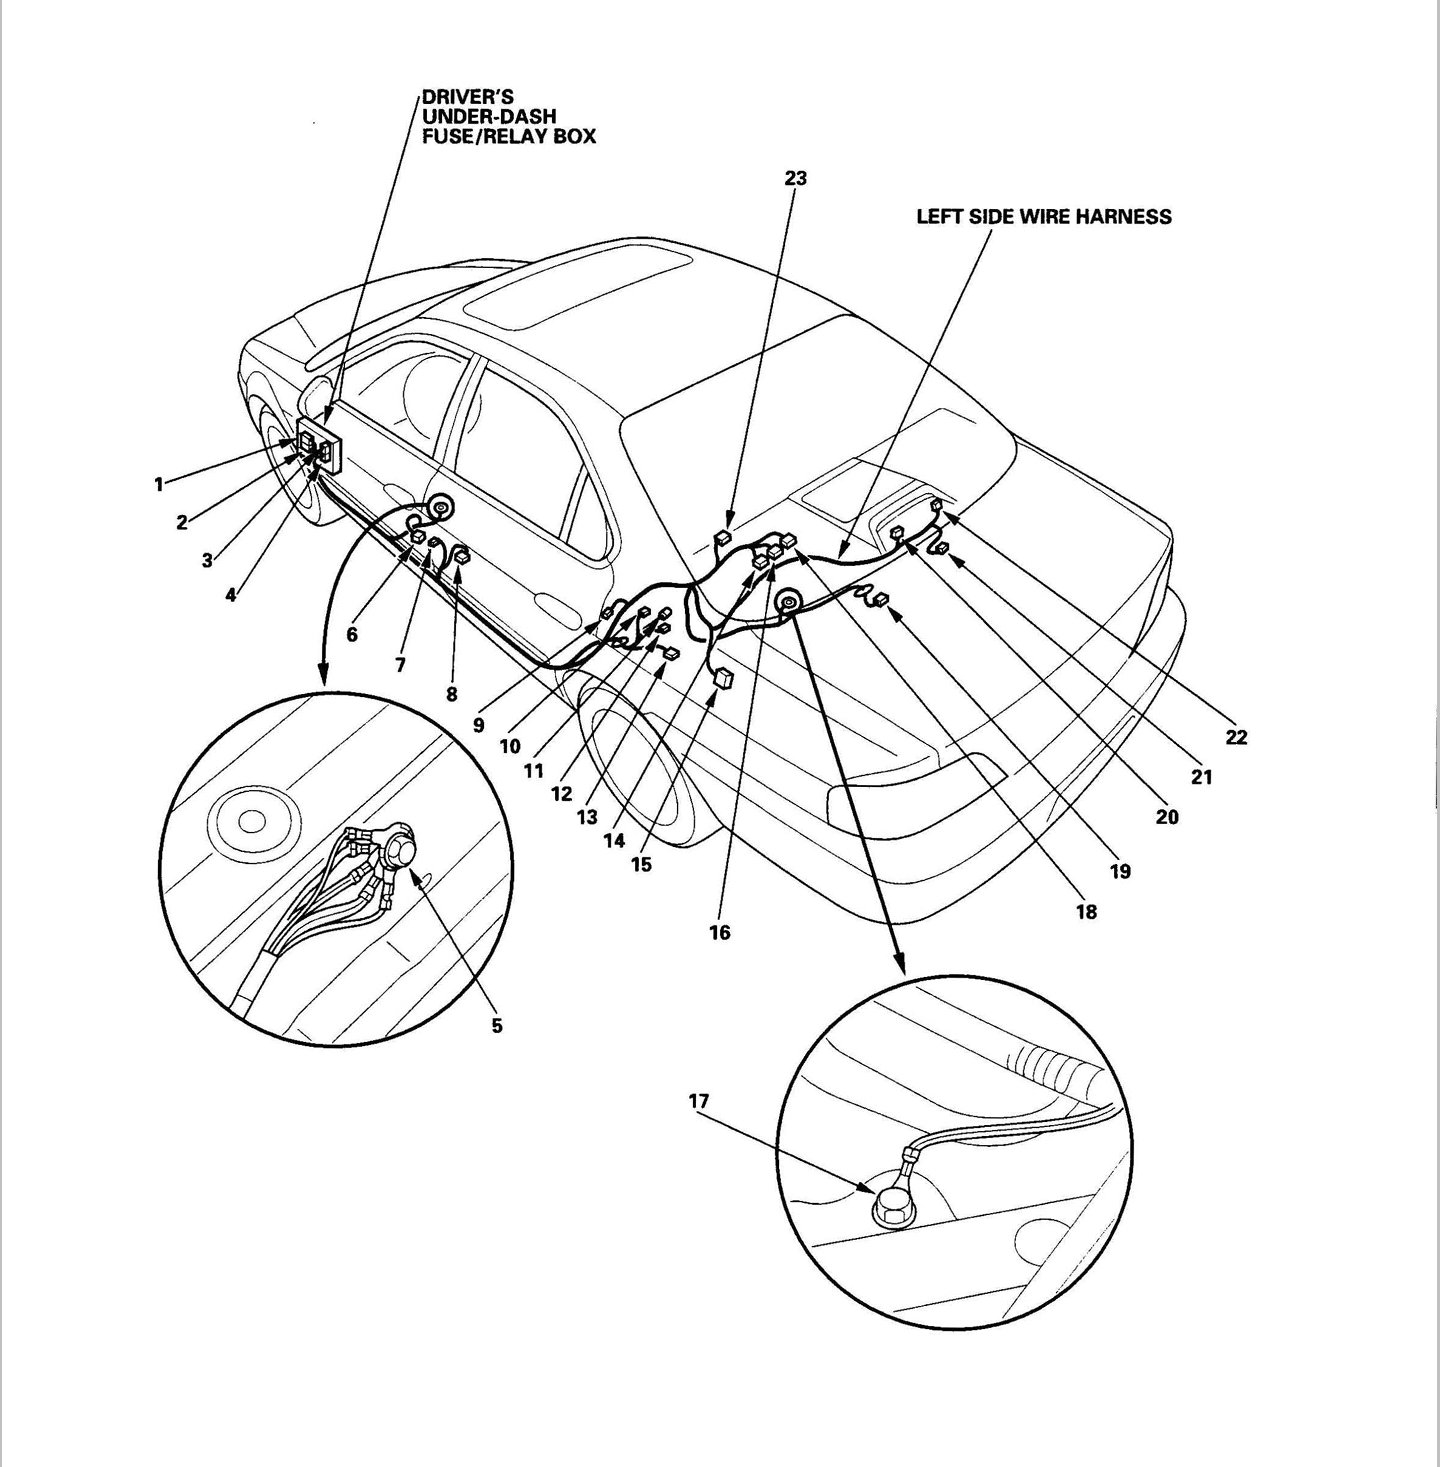 buick regal wiring diagram buick discover your wiring diagram 5 wire relay trunk release diagram buick regal wiring diagram also gm 3 8 engine diagram sensor location